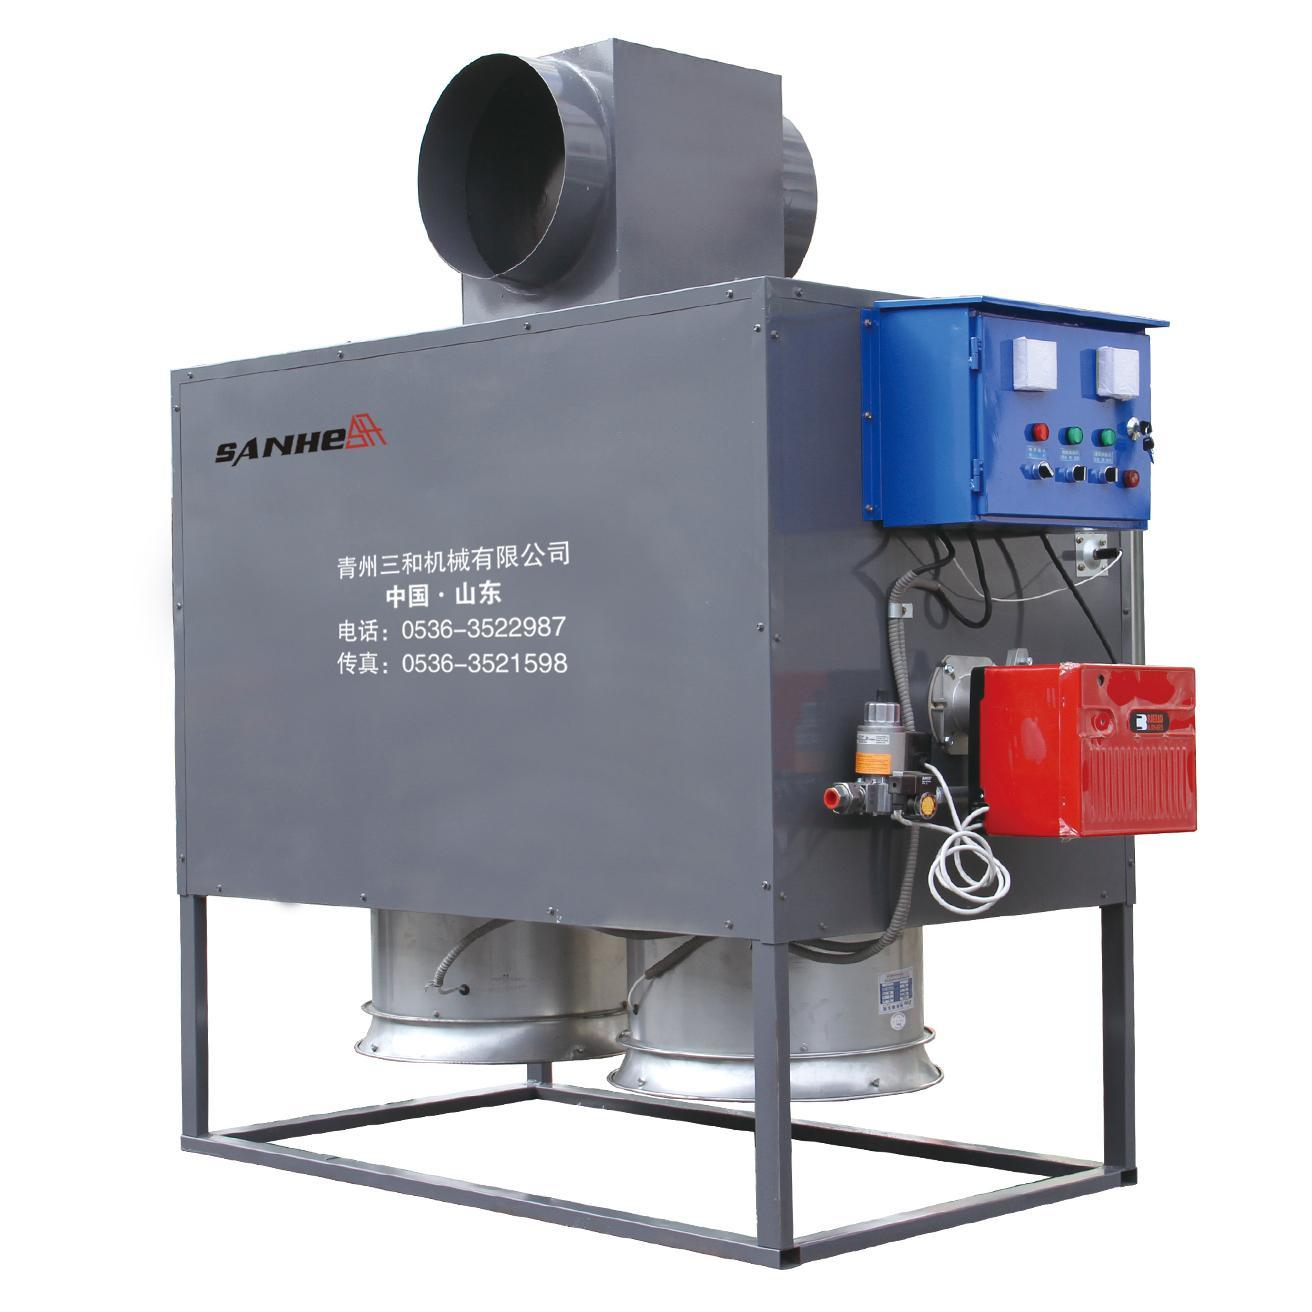 Gas-Burning Air Heater for Greenhouse, Poultry